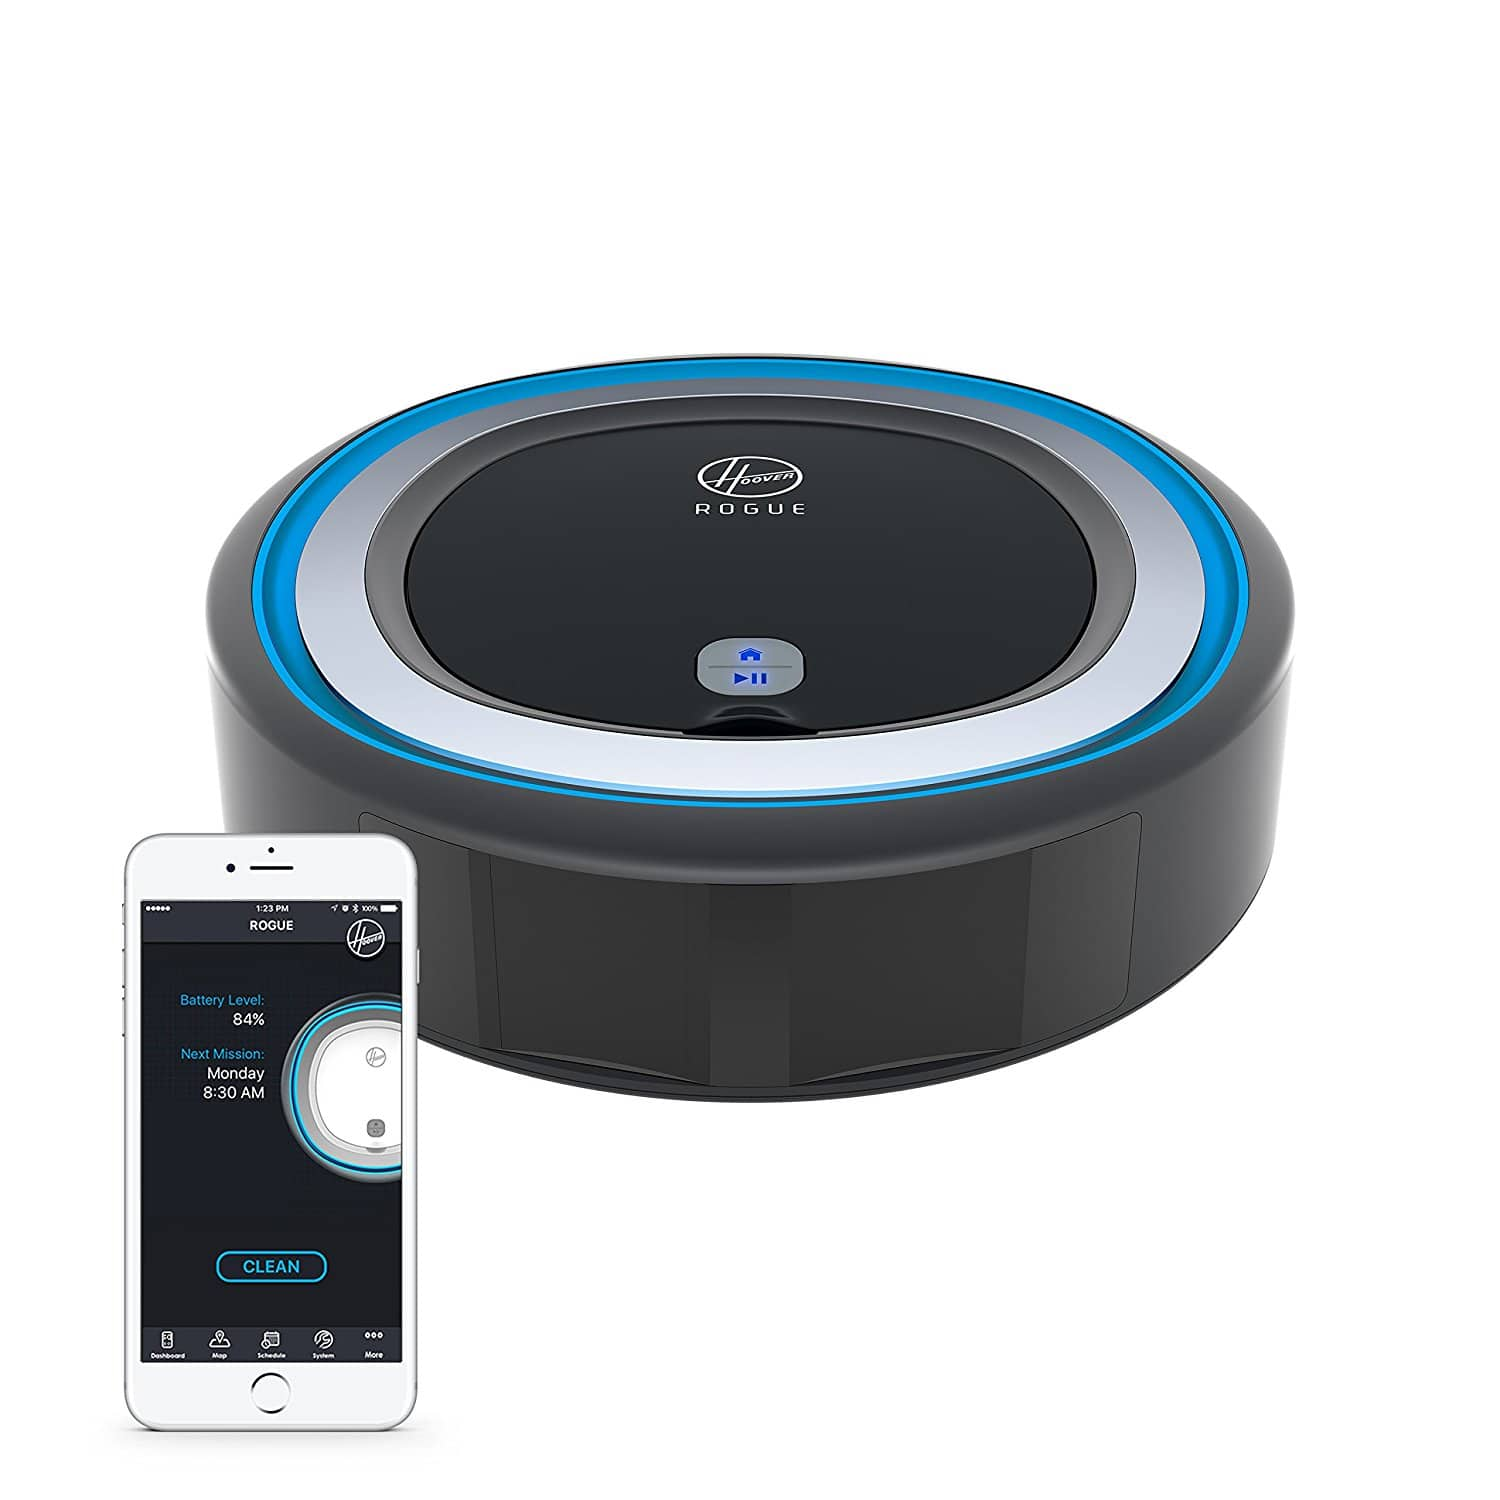 Hoover ROGUE 970 Smart Robot Vacuum Cleaner - $239.99